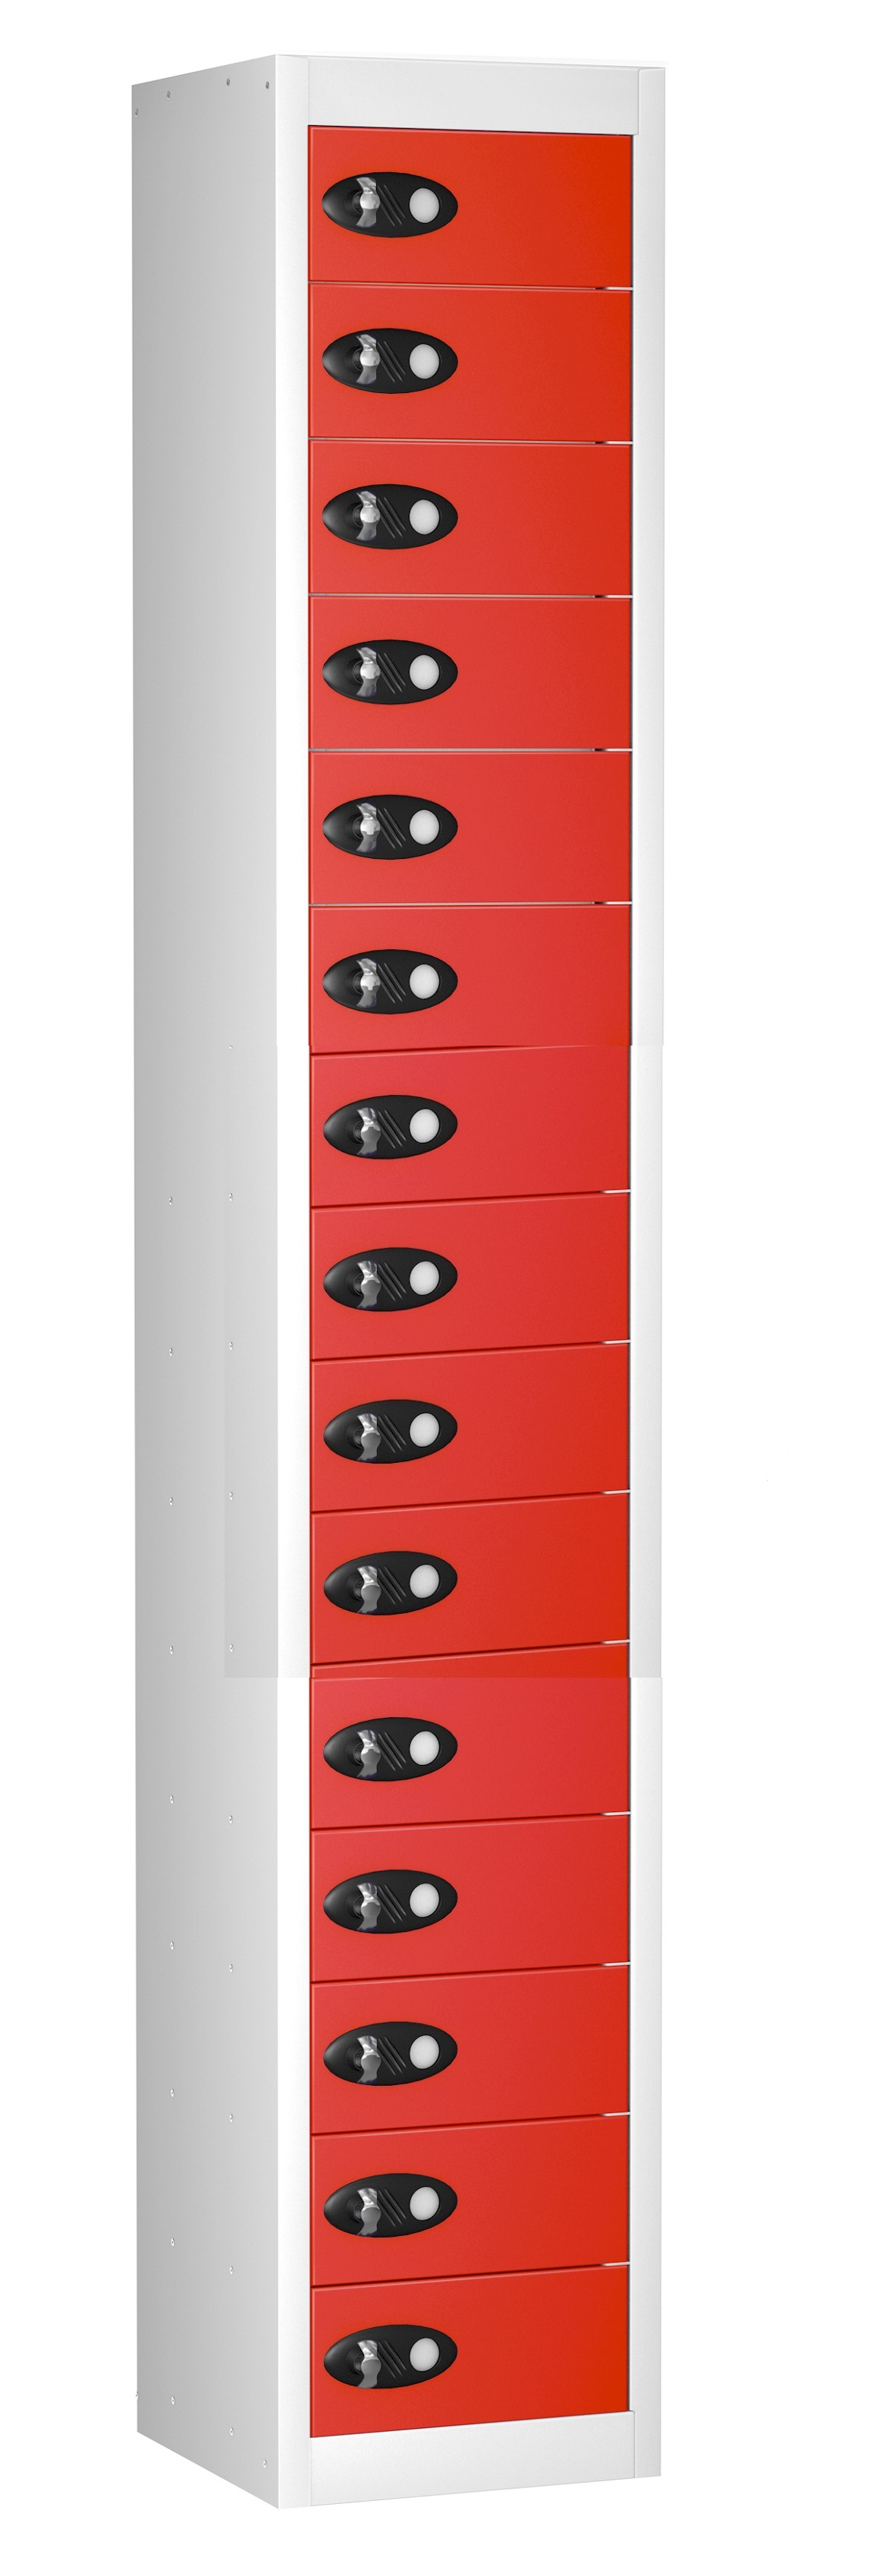 TABLET Storage Locker -15 Doors (Non Charging)